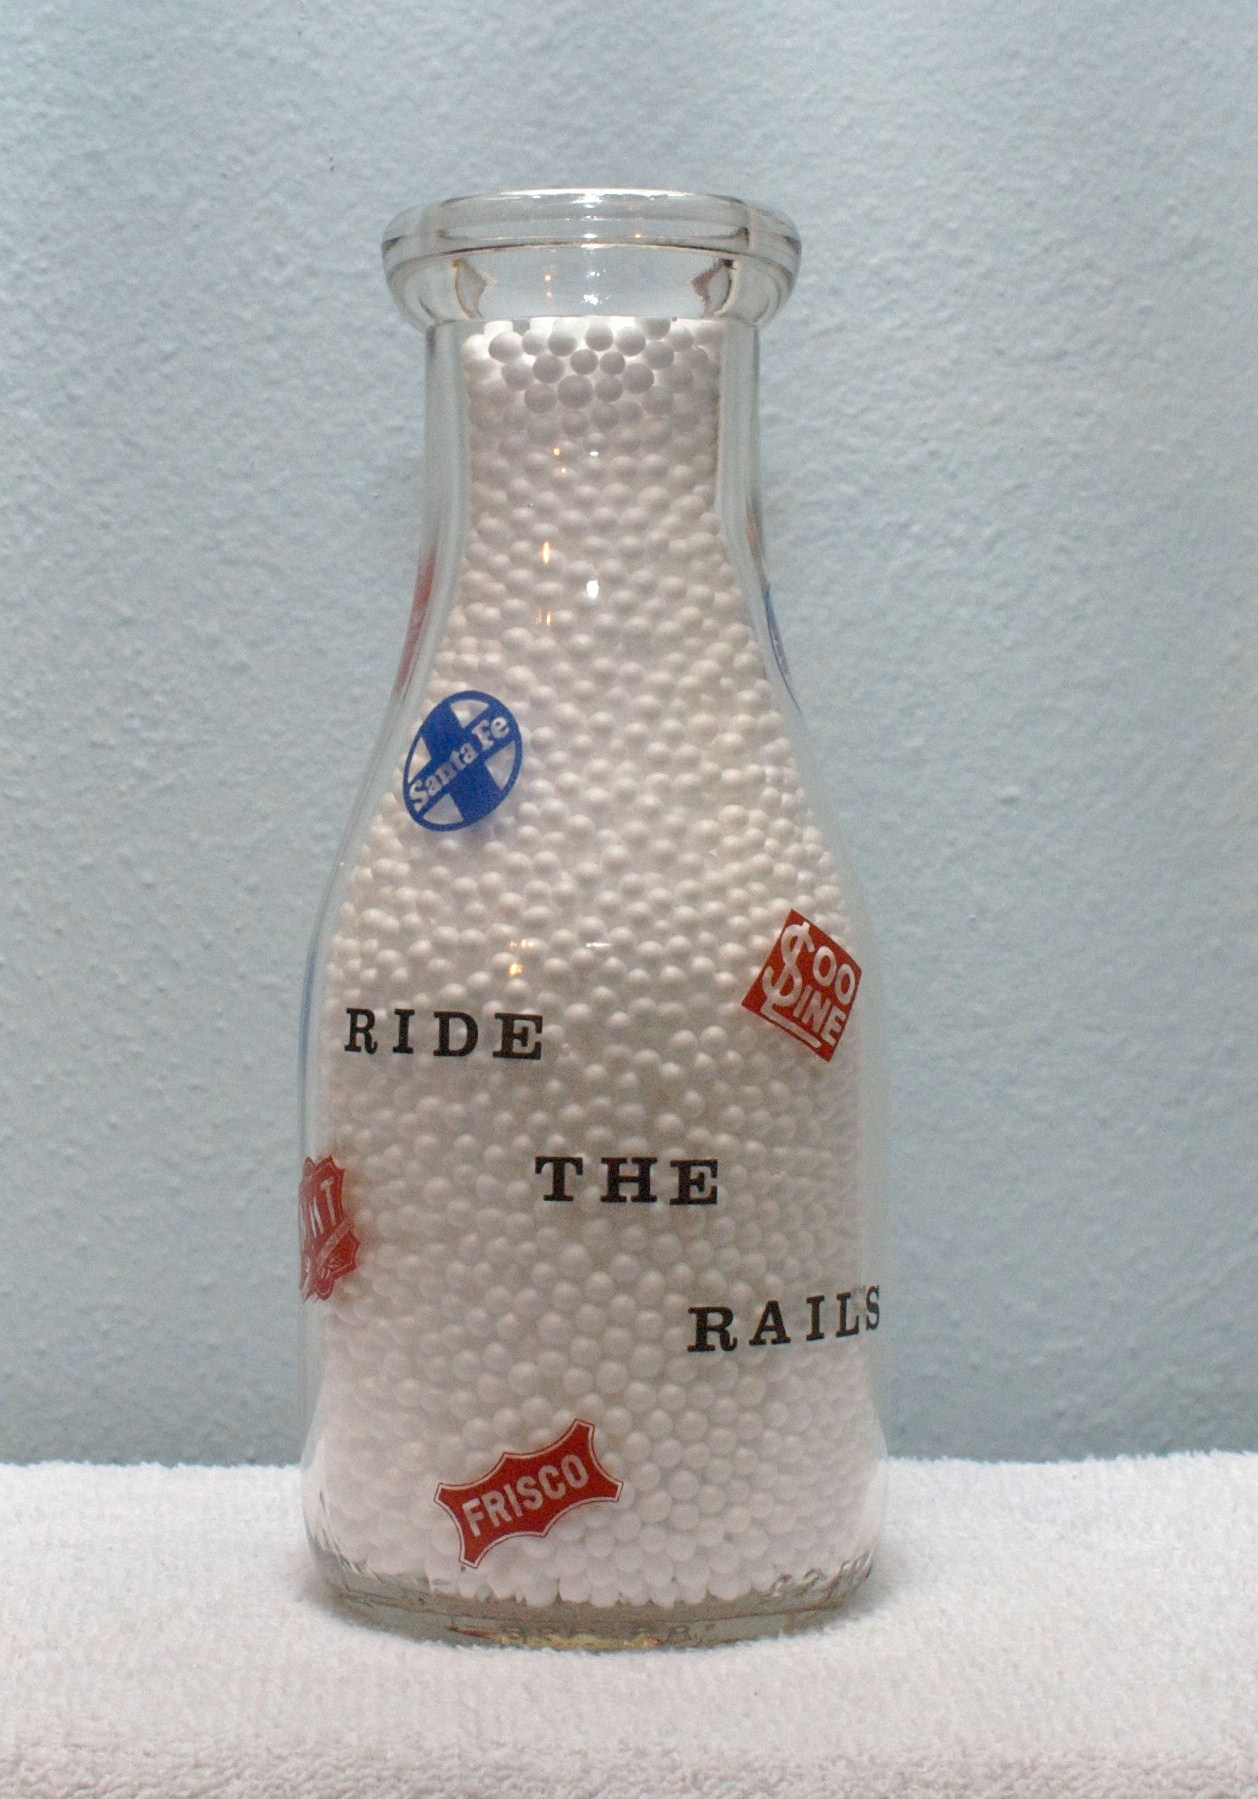 Limited Edition Page Milk Coffeyville Kansas Pint Milk Bottle 1940s back Ride the Rails